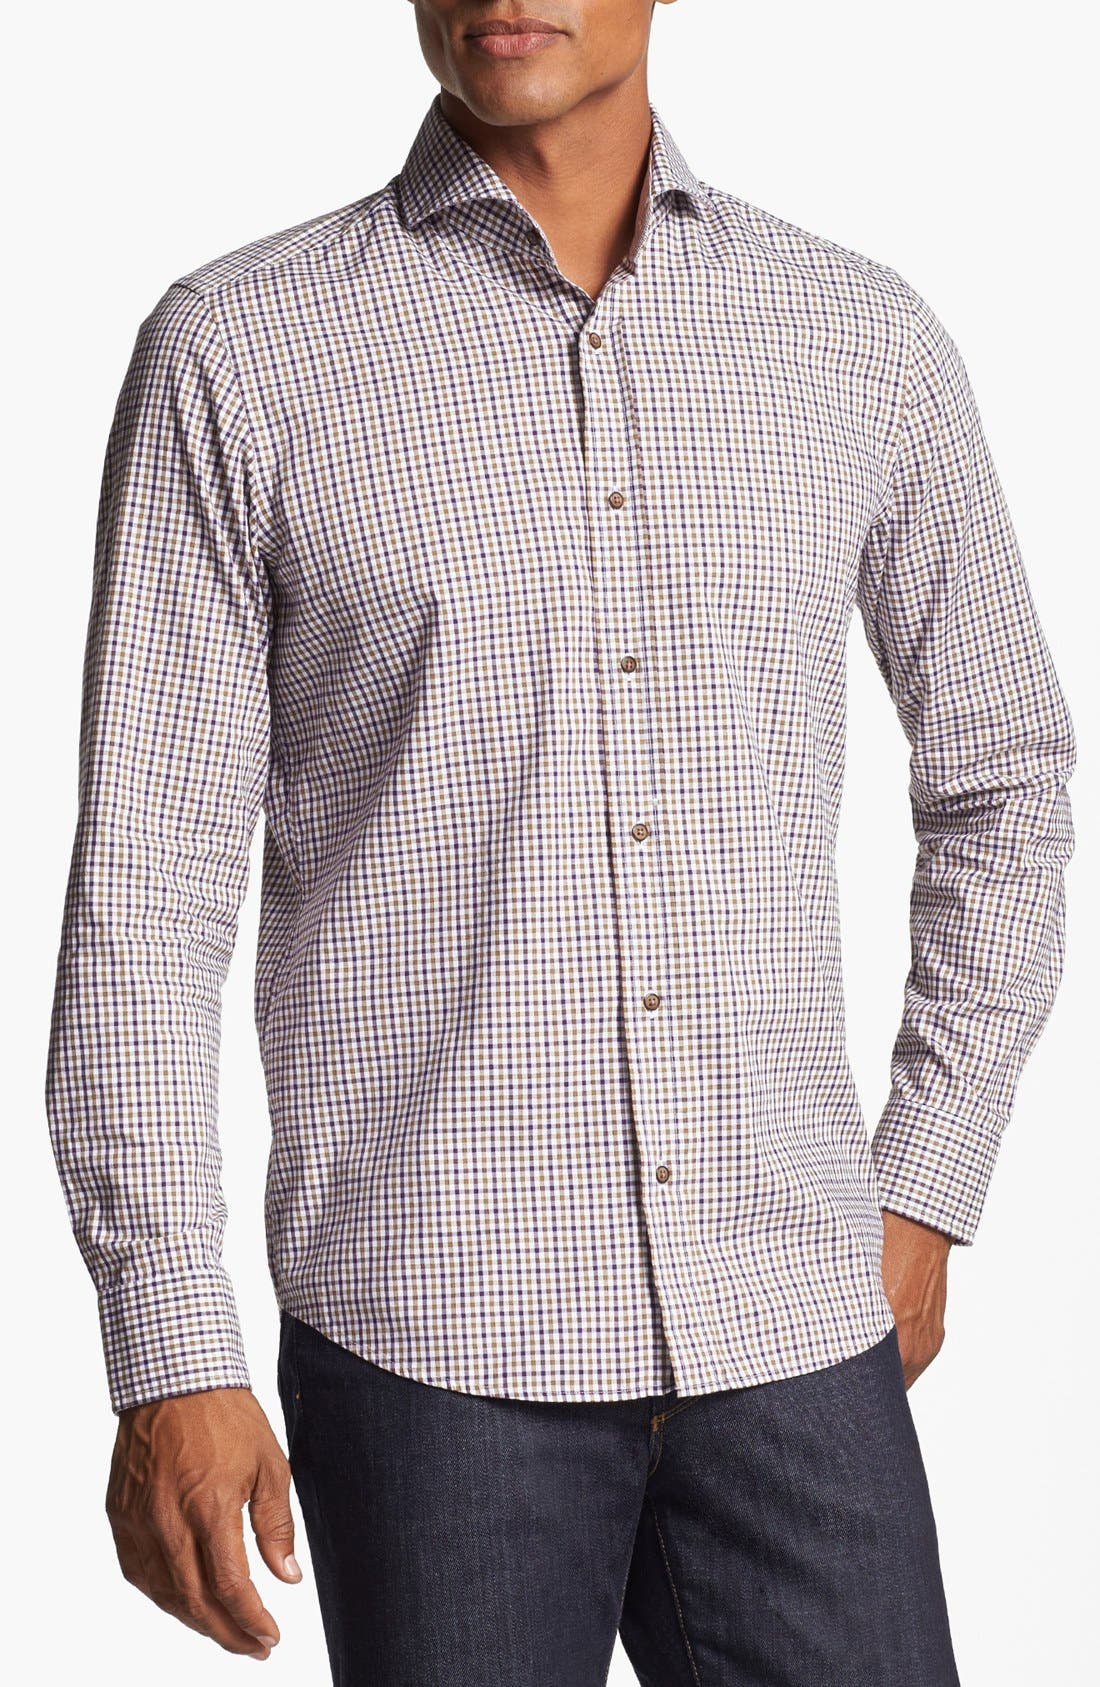 Alternate Image 1 Selected - BOSS HUGO BOSS 'Sean' Regular Fit Sport Shirt